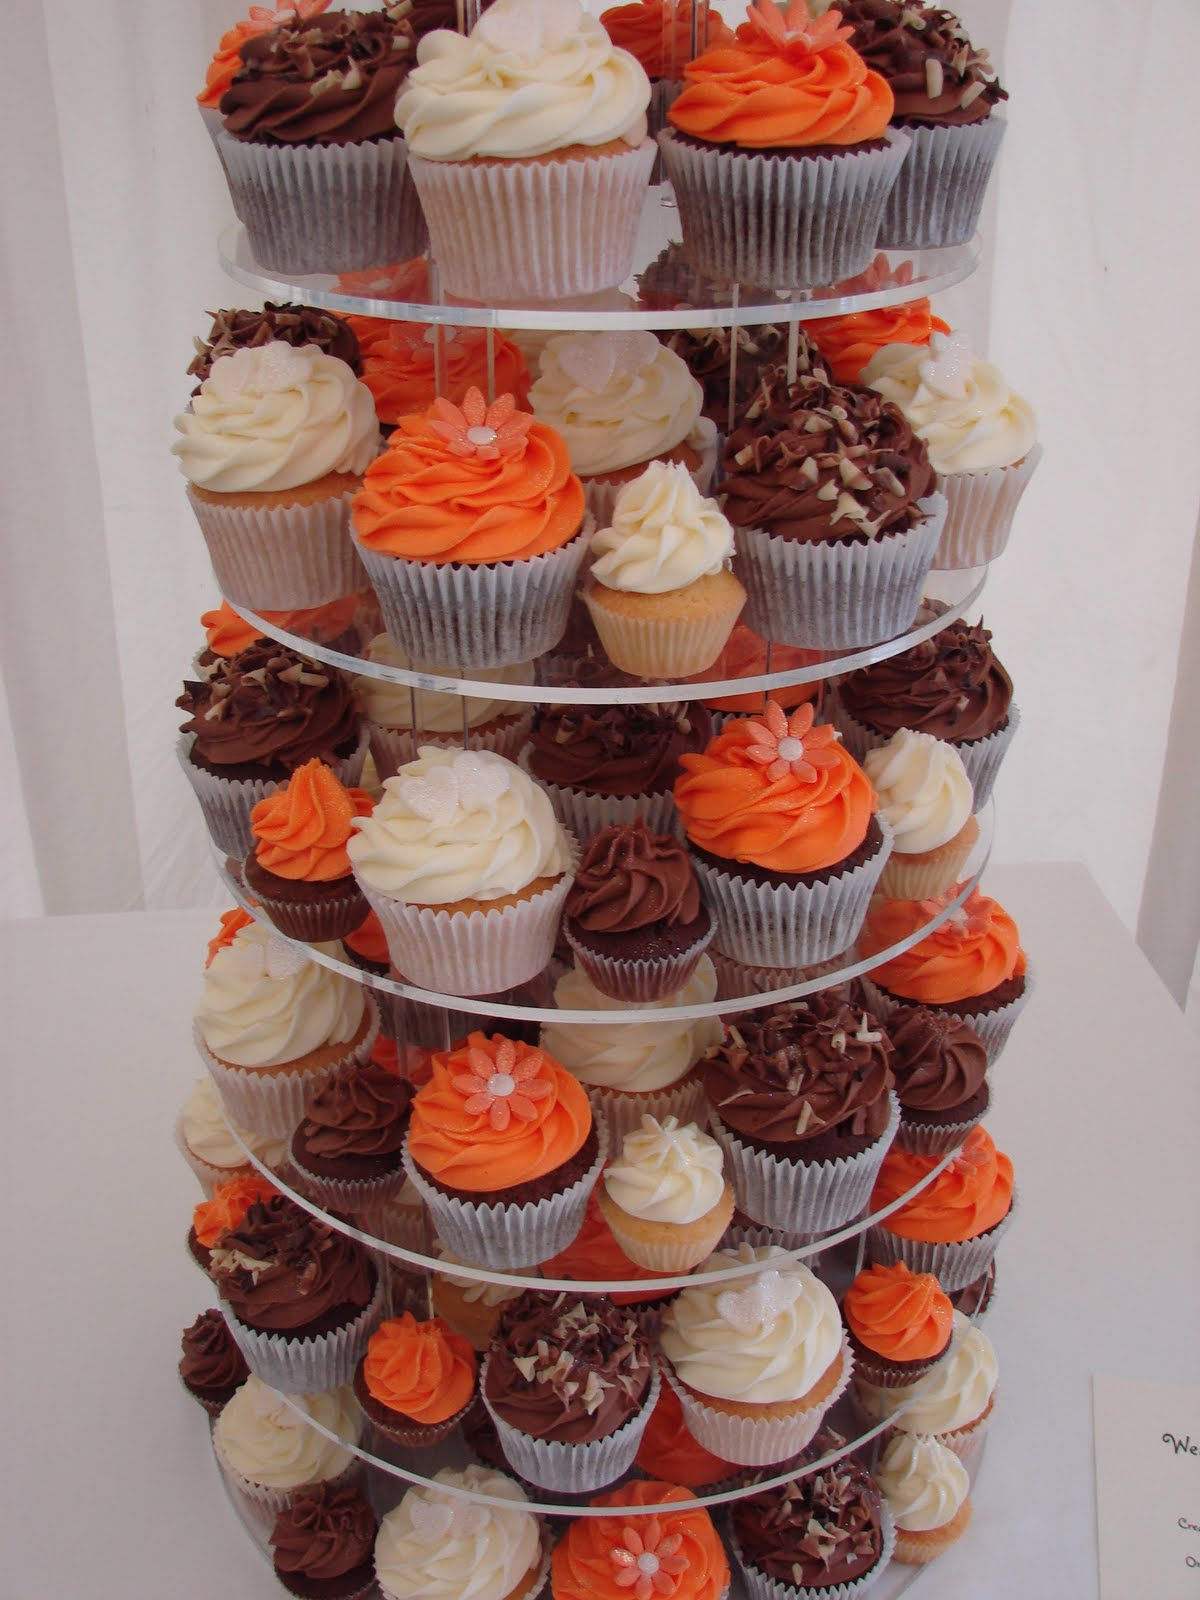 What a beautiful combination of colours for your wedding cupcakes.